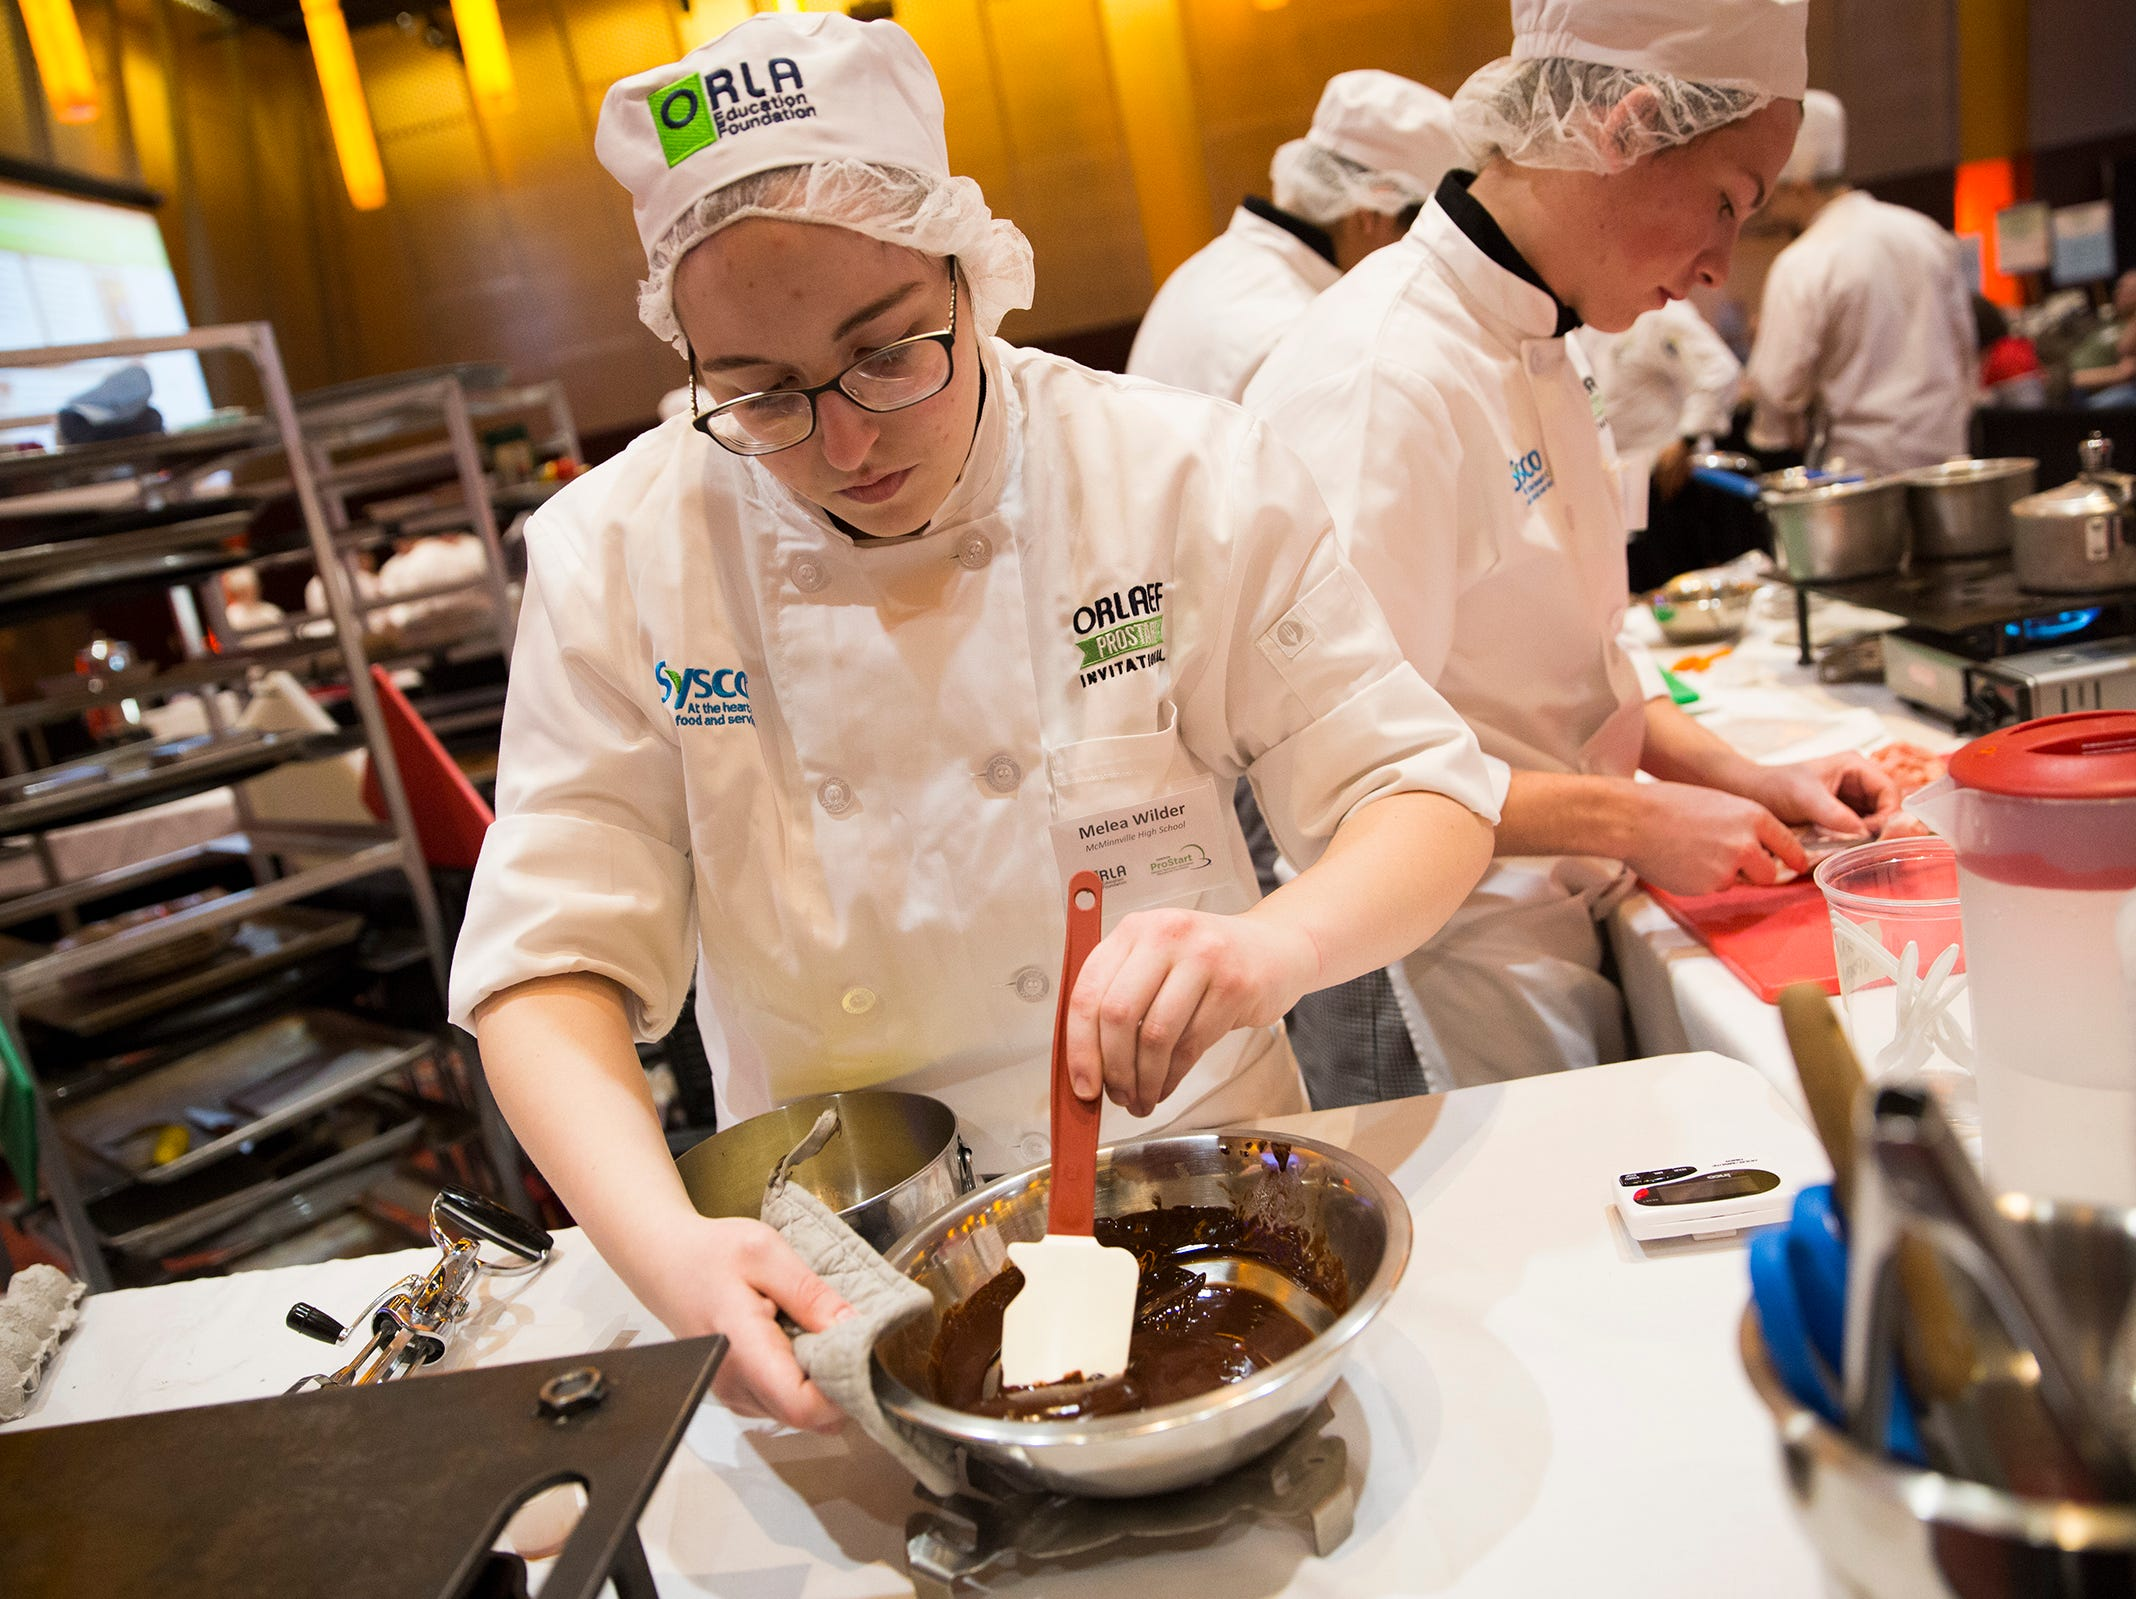 McMinnville's Melea Wilder mixes a bowl of chocolate for the teams desert dish during the ORLAEF's ProStart Invitational, a statewide high school culinary competition, at the Salem Convention Center on March 18, 2019.